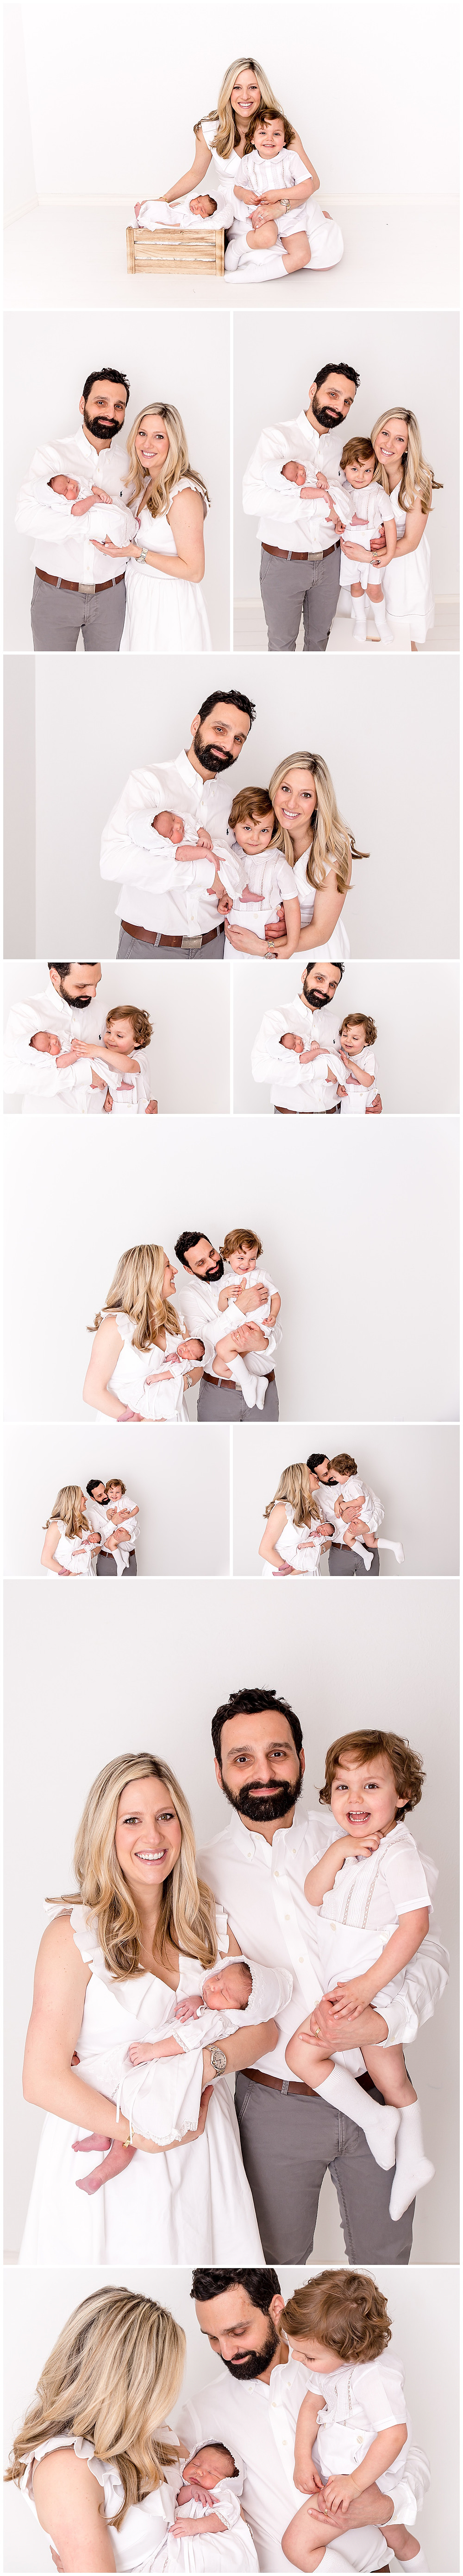 natural family photography in Dallas, TX